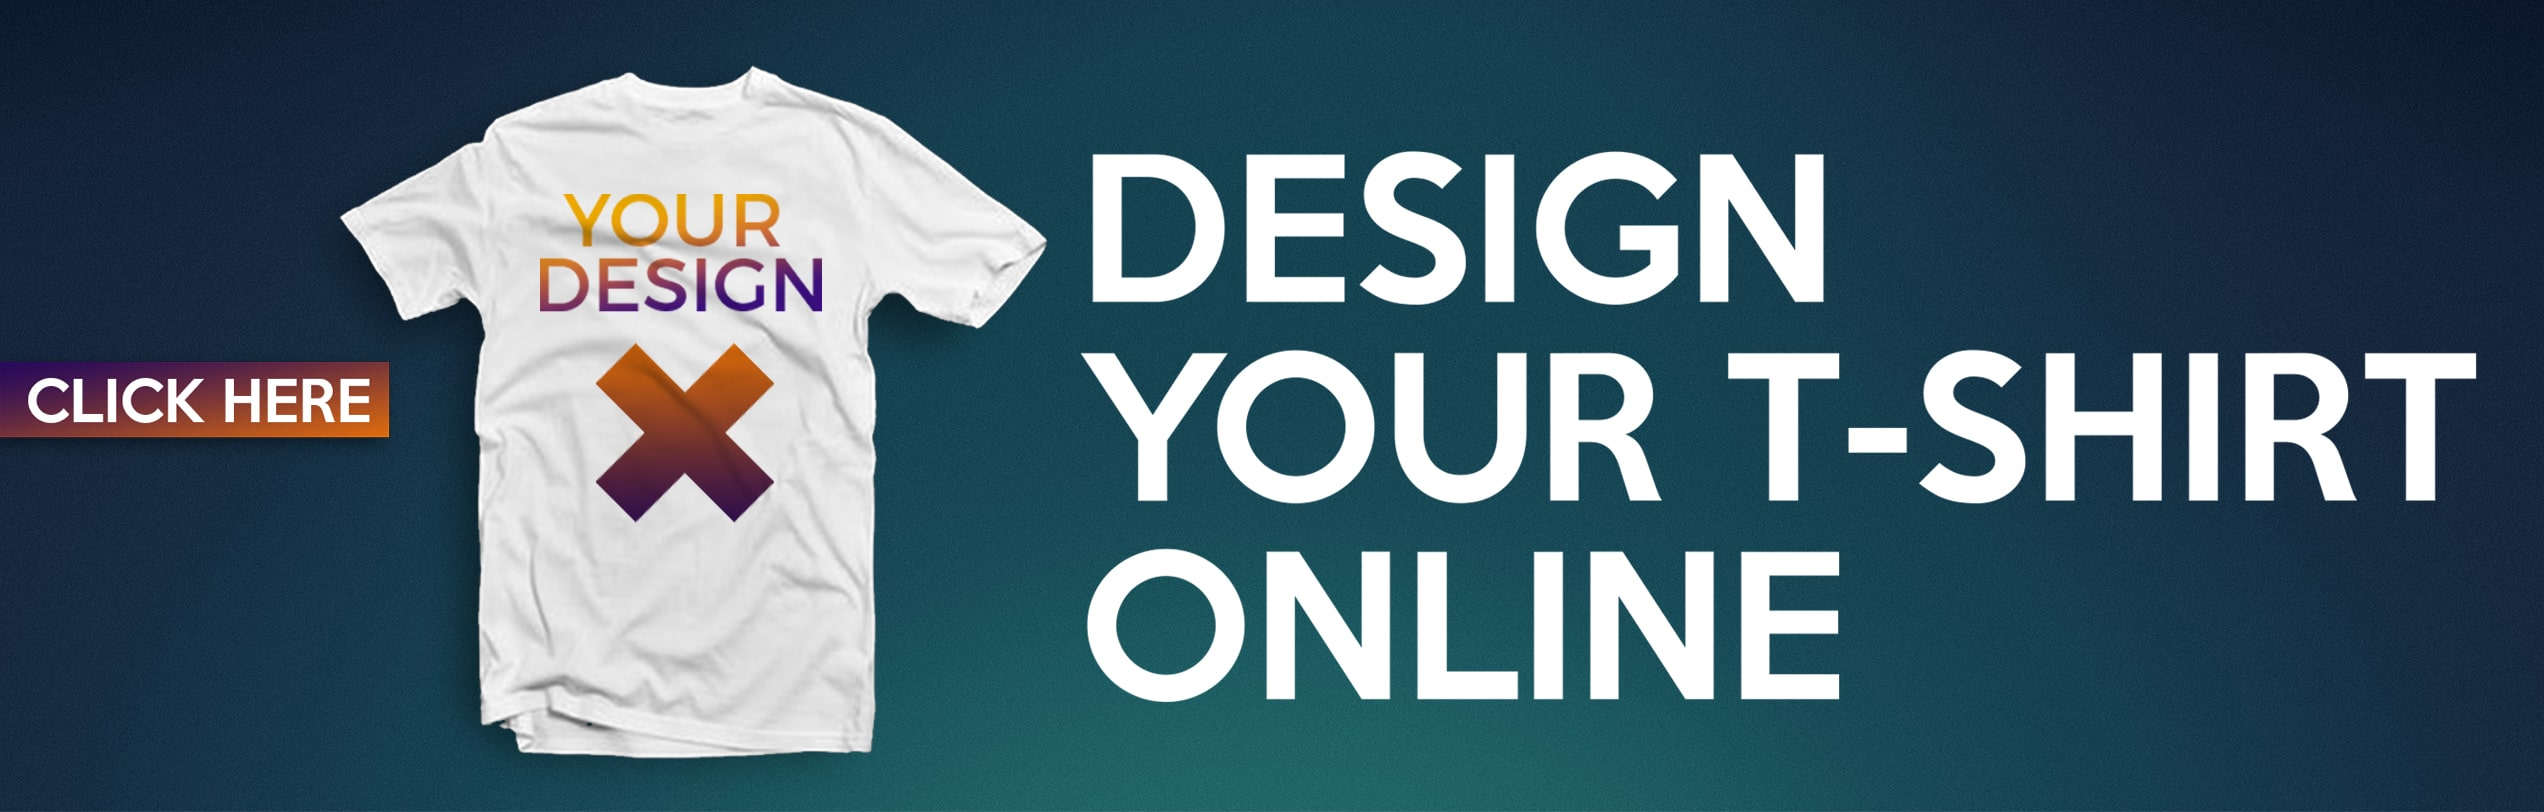 Design Your Shirt Online